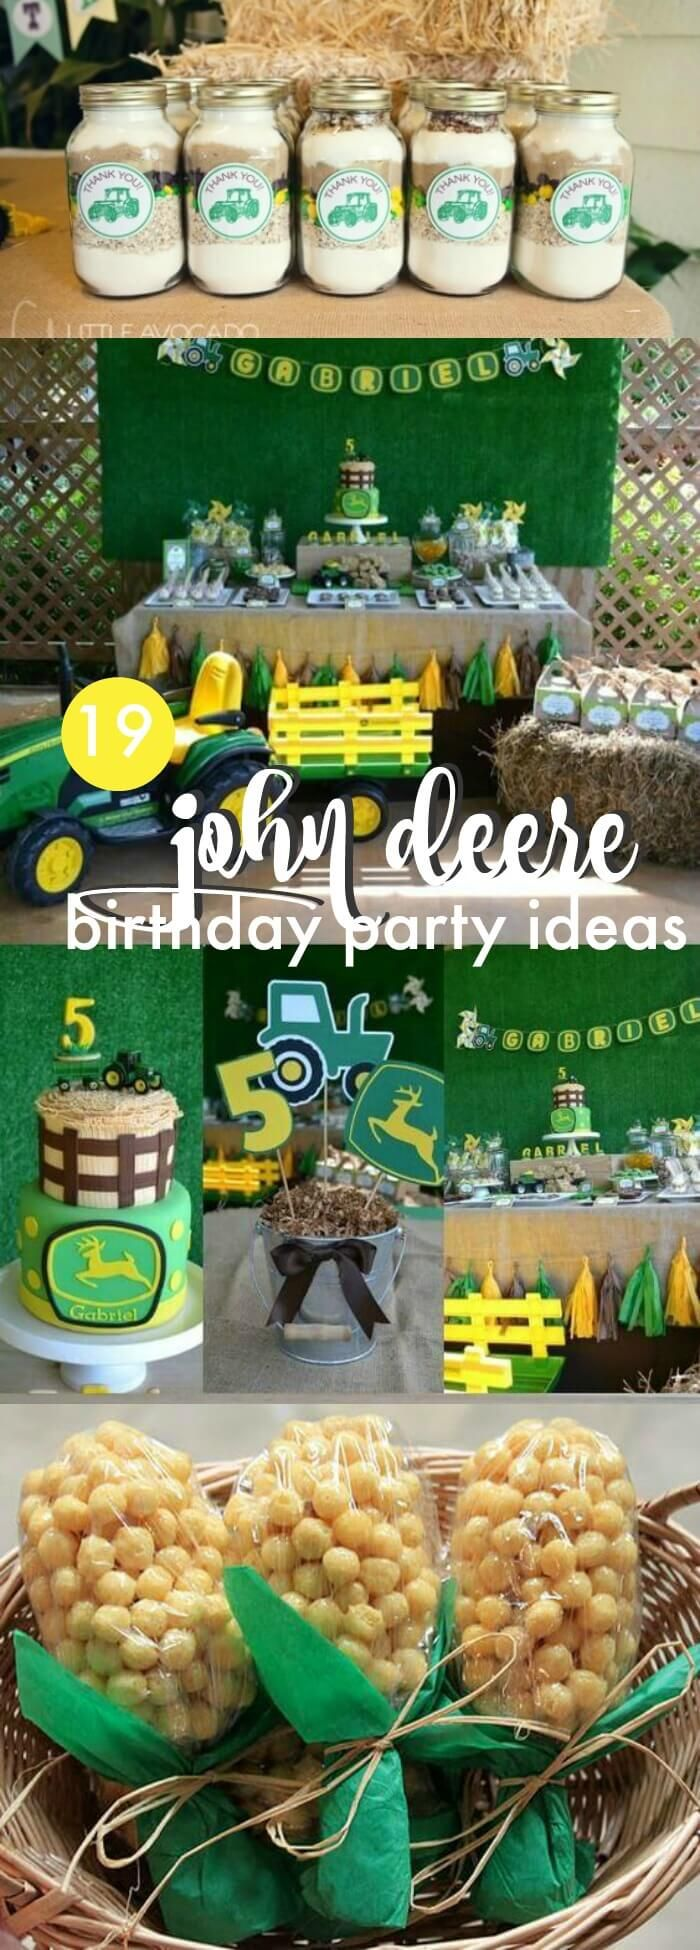 19 John Deere Tractor Party Ideas via @spaceshipslb